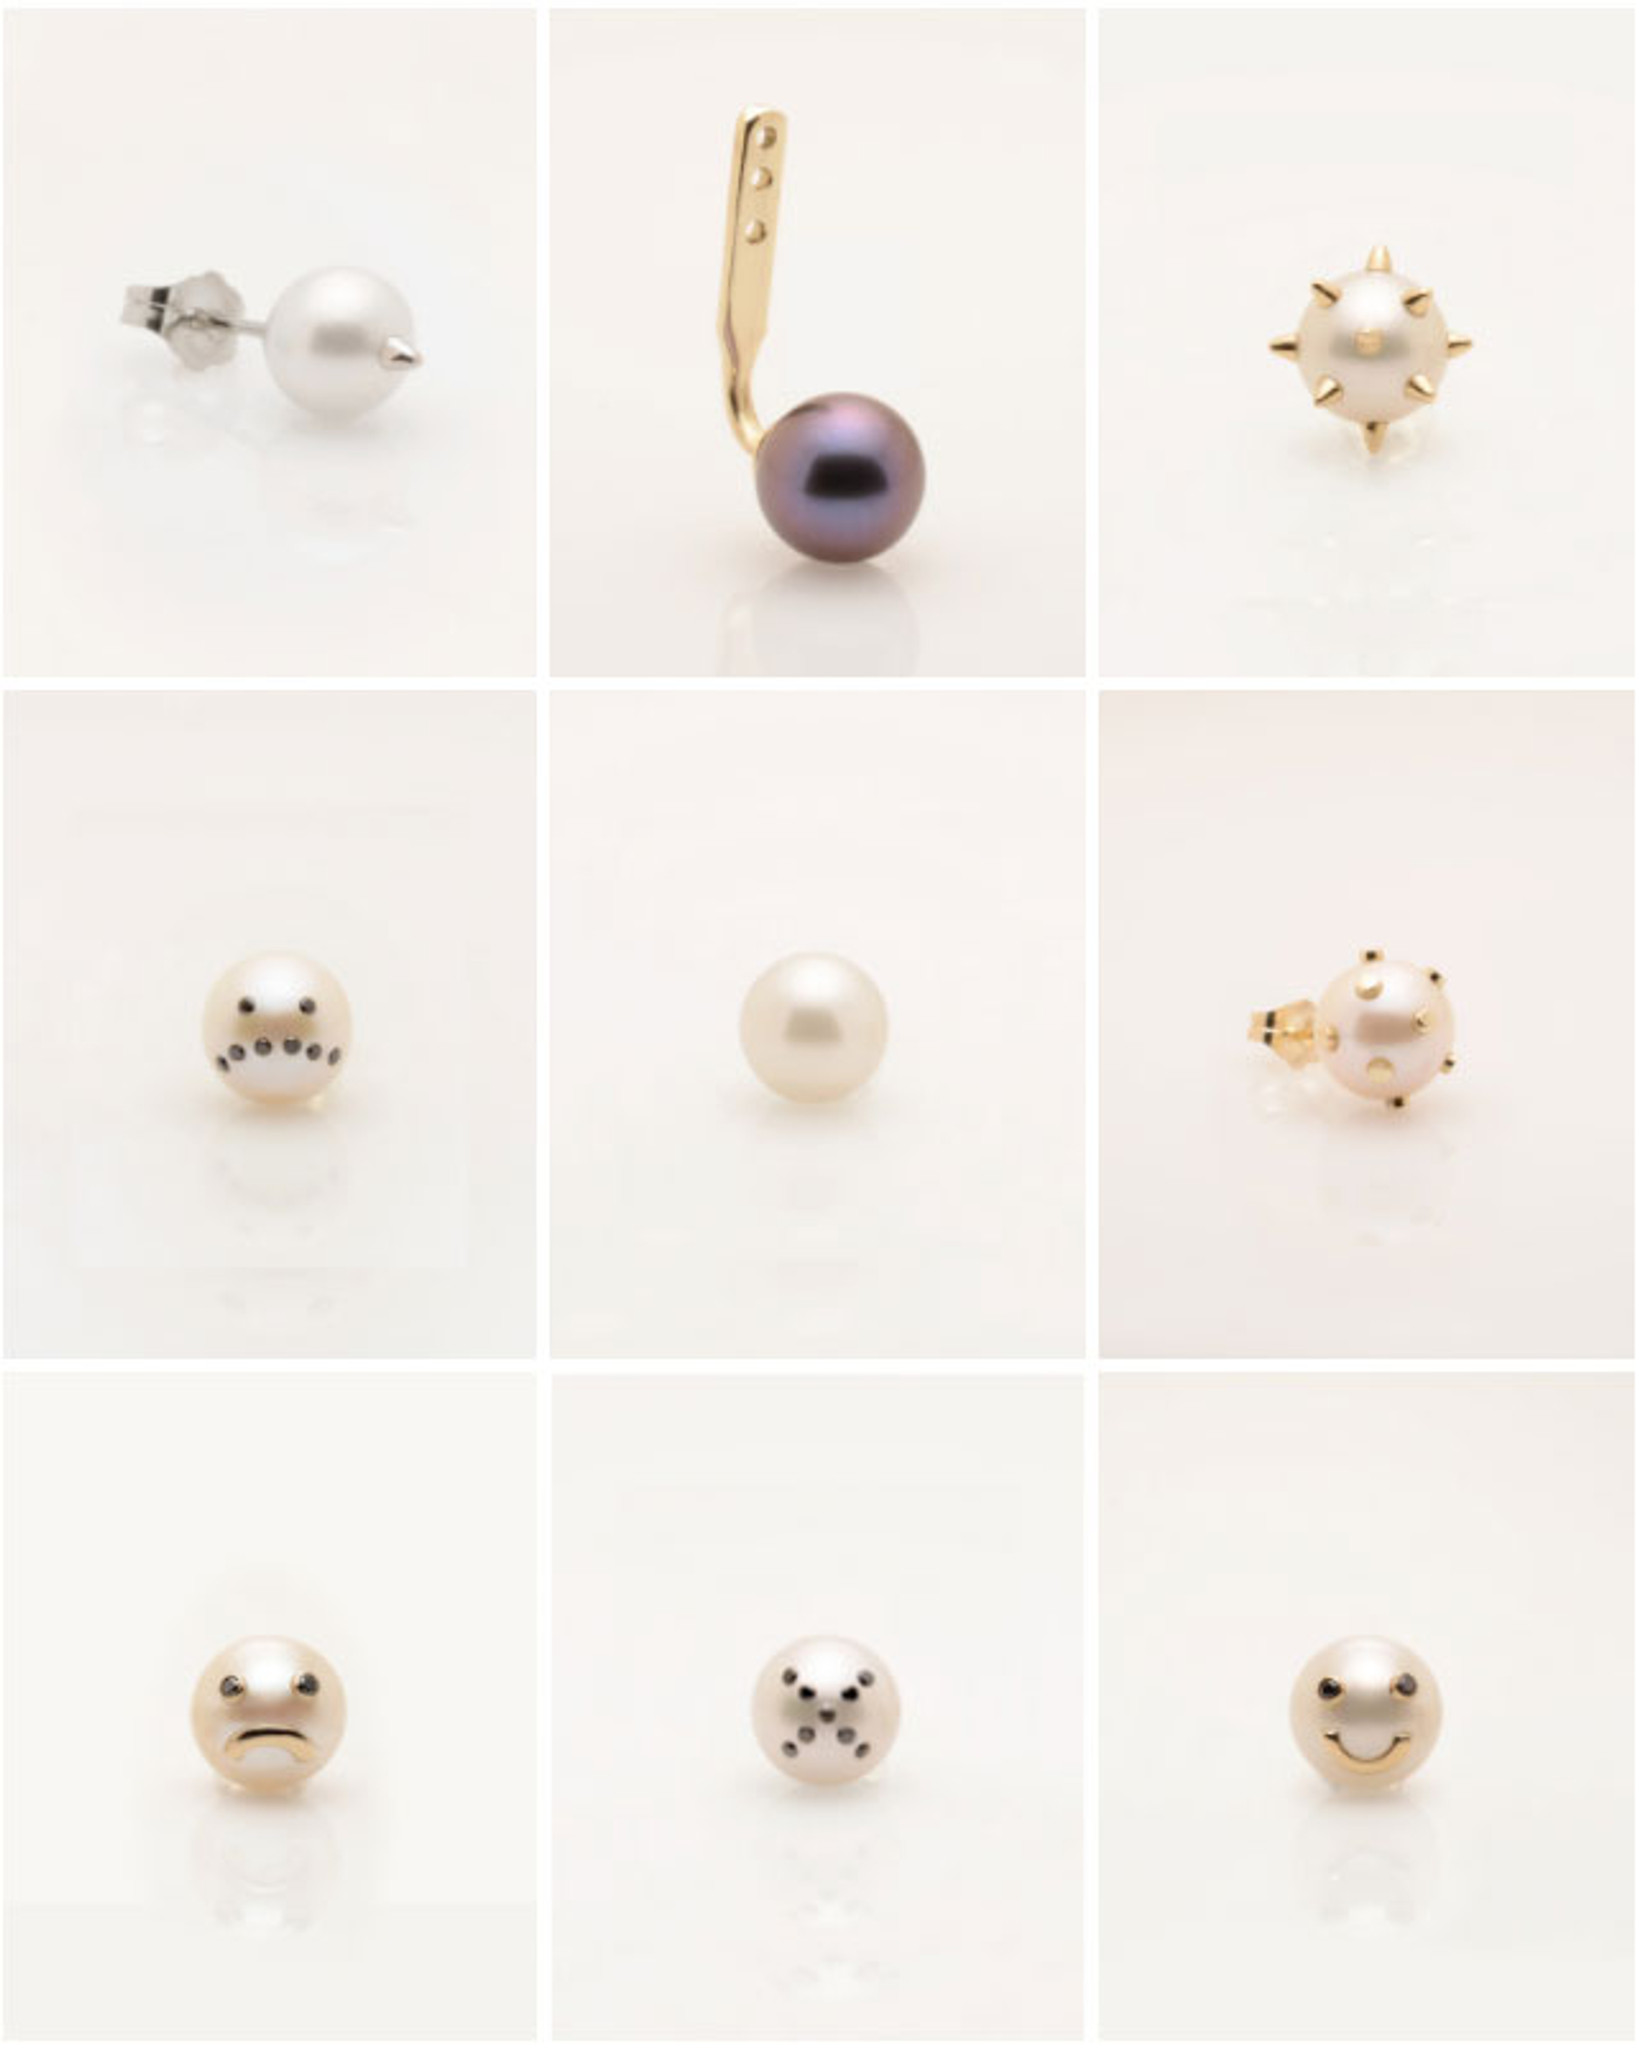 Single-Pearl-Earrings-to-Mix-and-Match-by-Jewelry-Designer-Nektar-De-Stagni